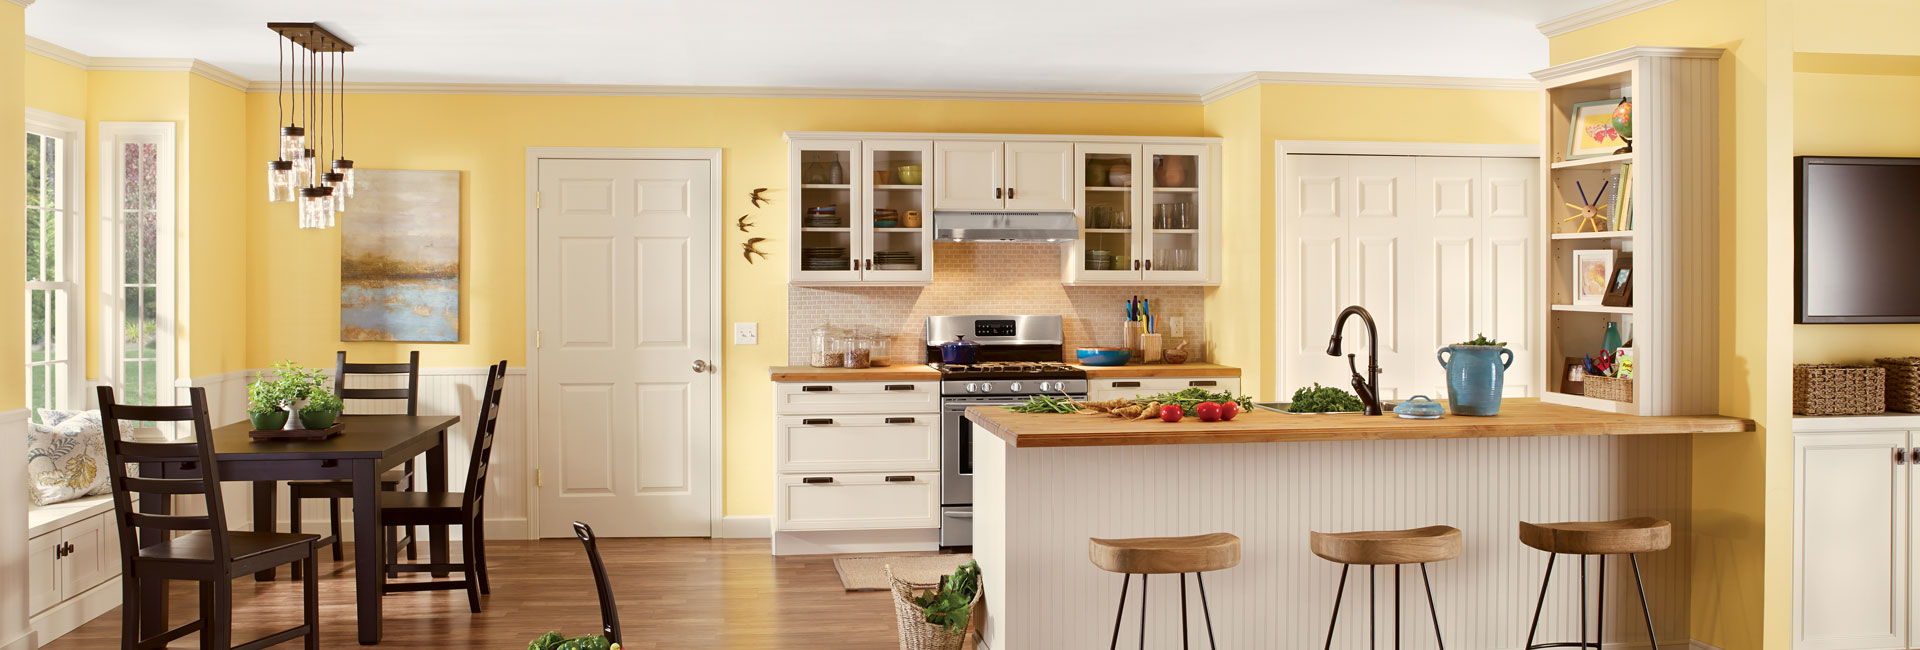 cardell cabinetry | kitchen and bathroom cabinetry